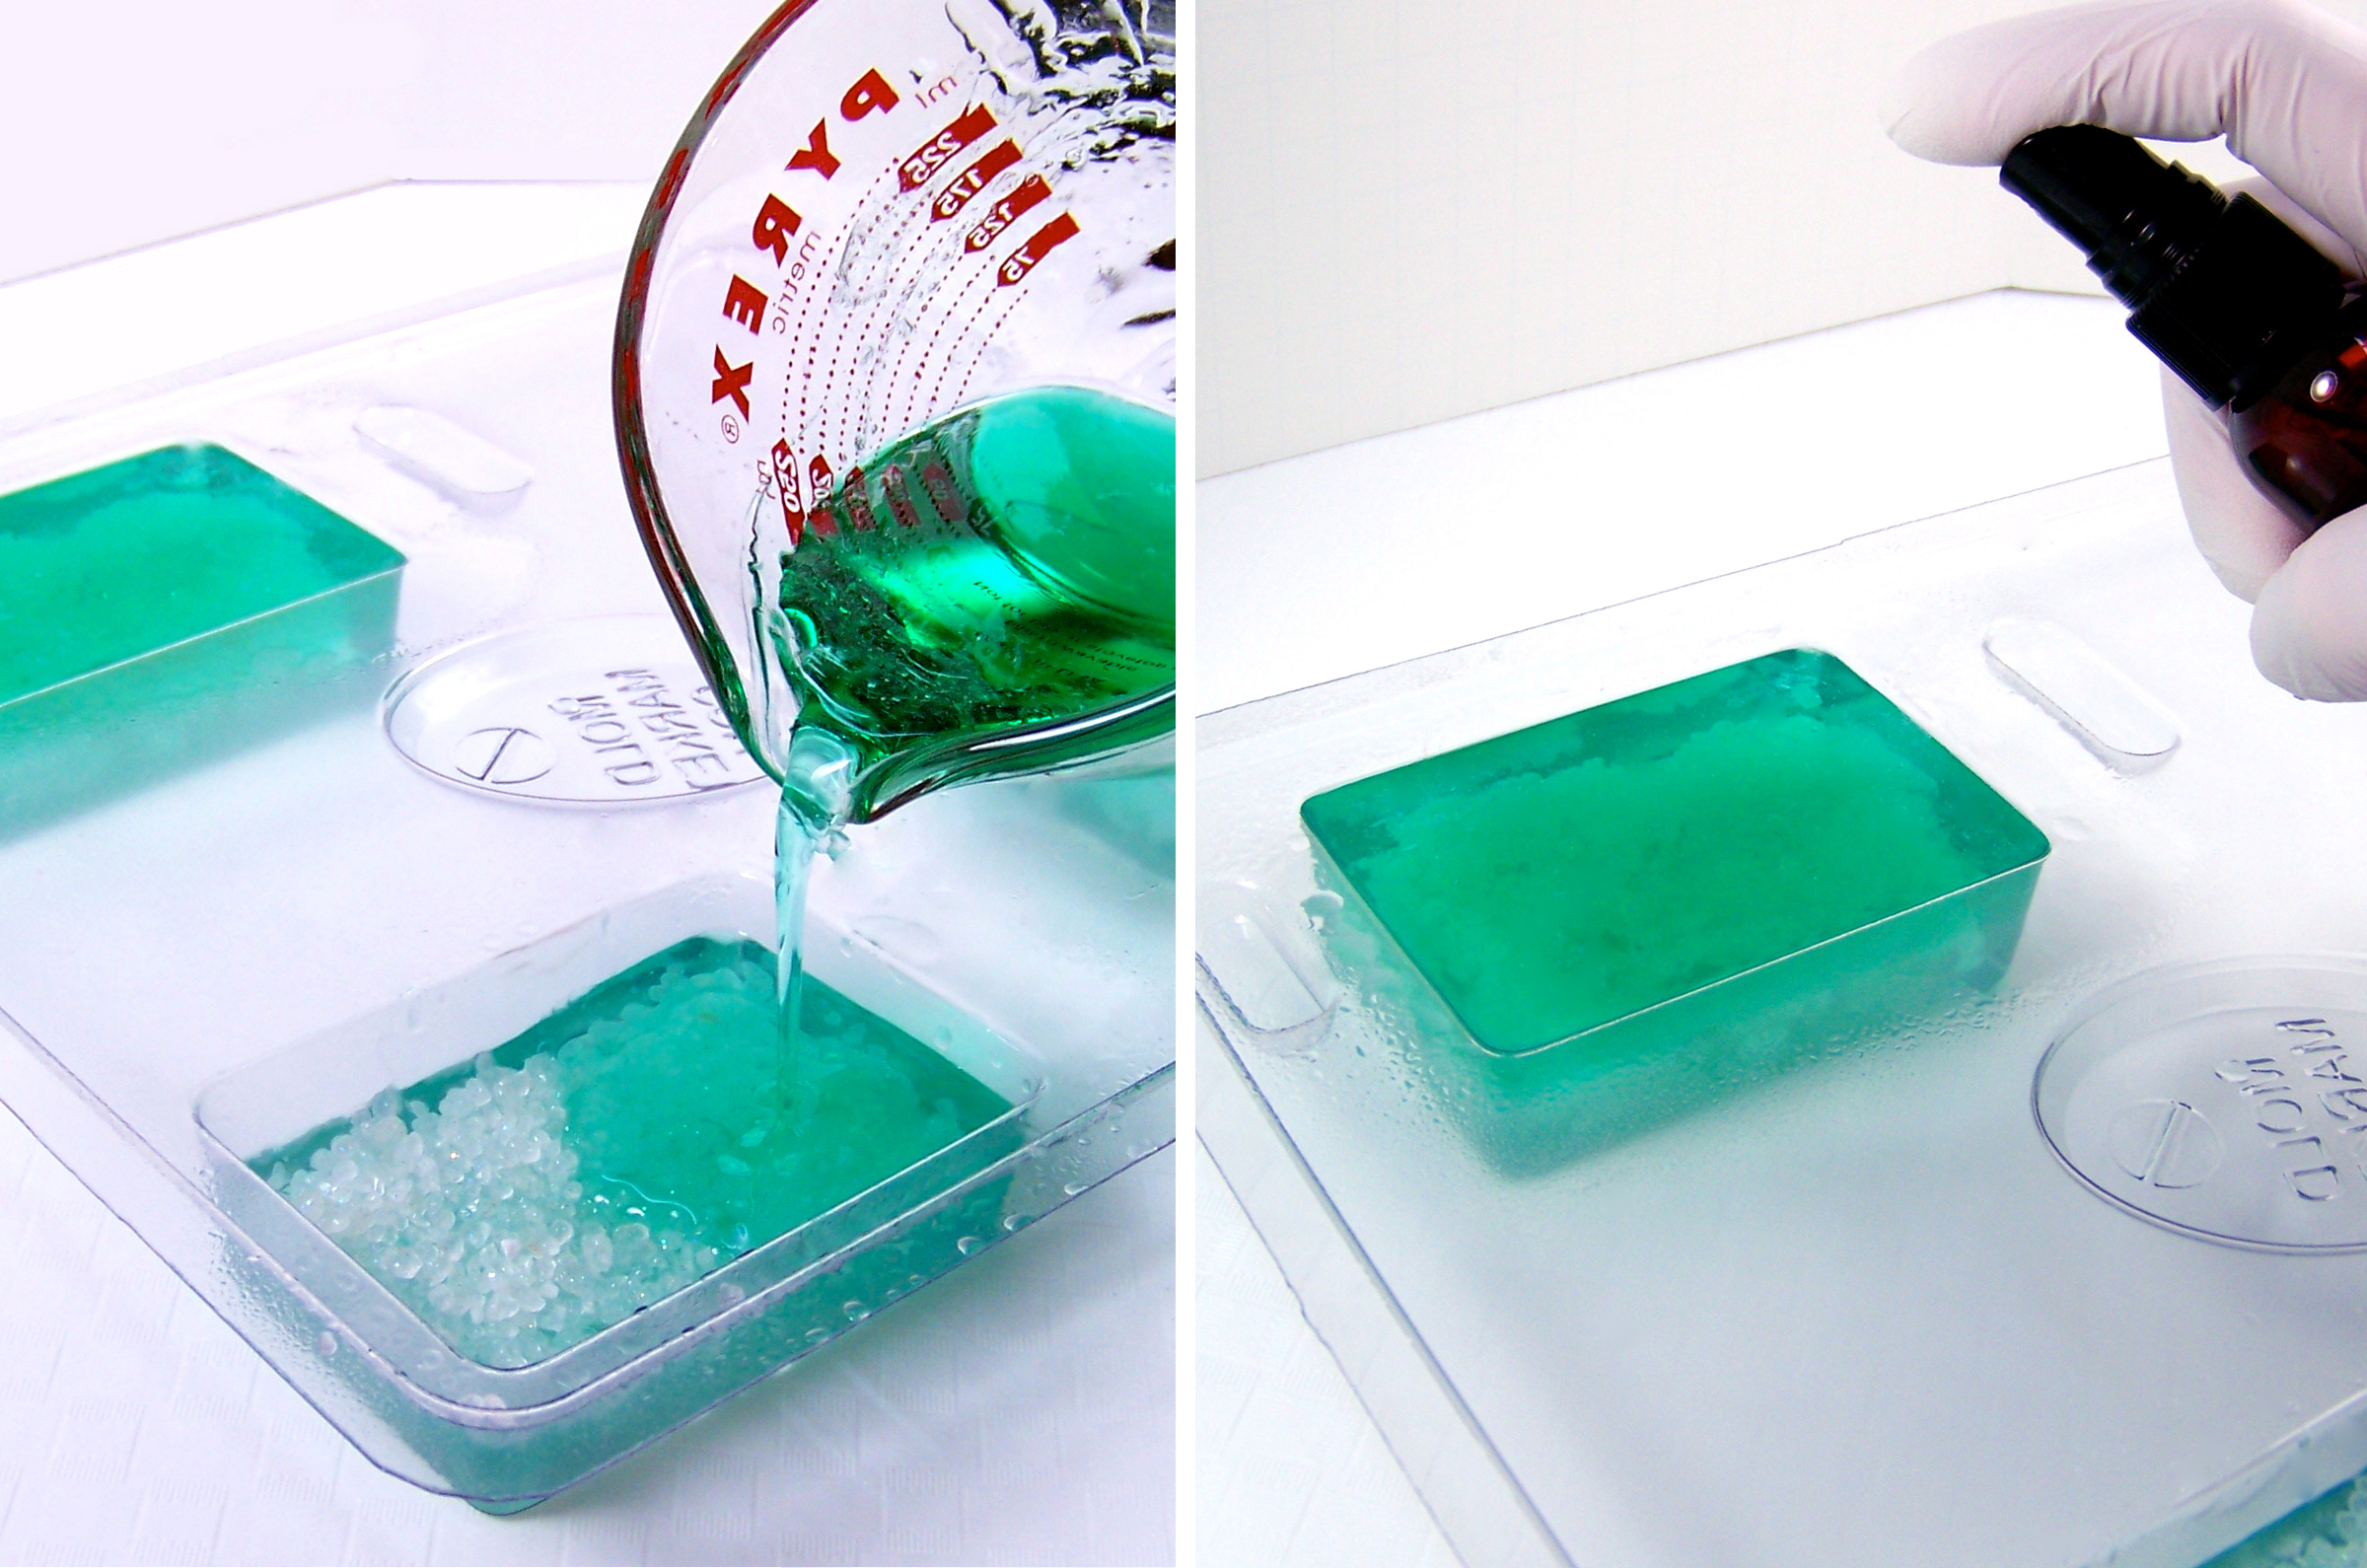 pour last layer of soap into mold cavities and spritz with alcohol to remove bubbles